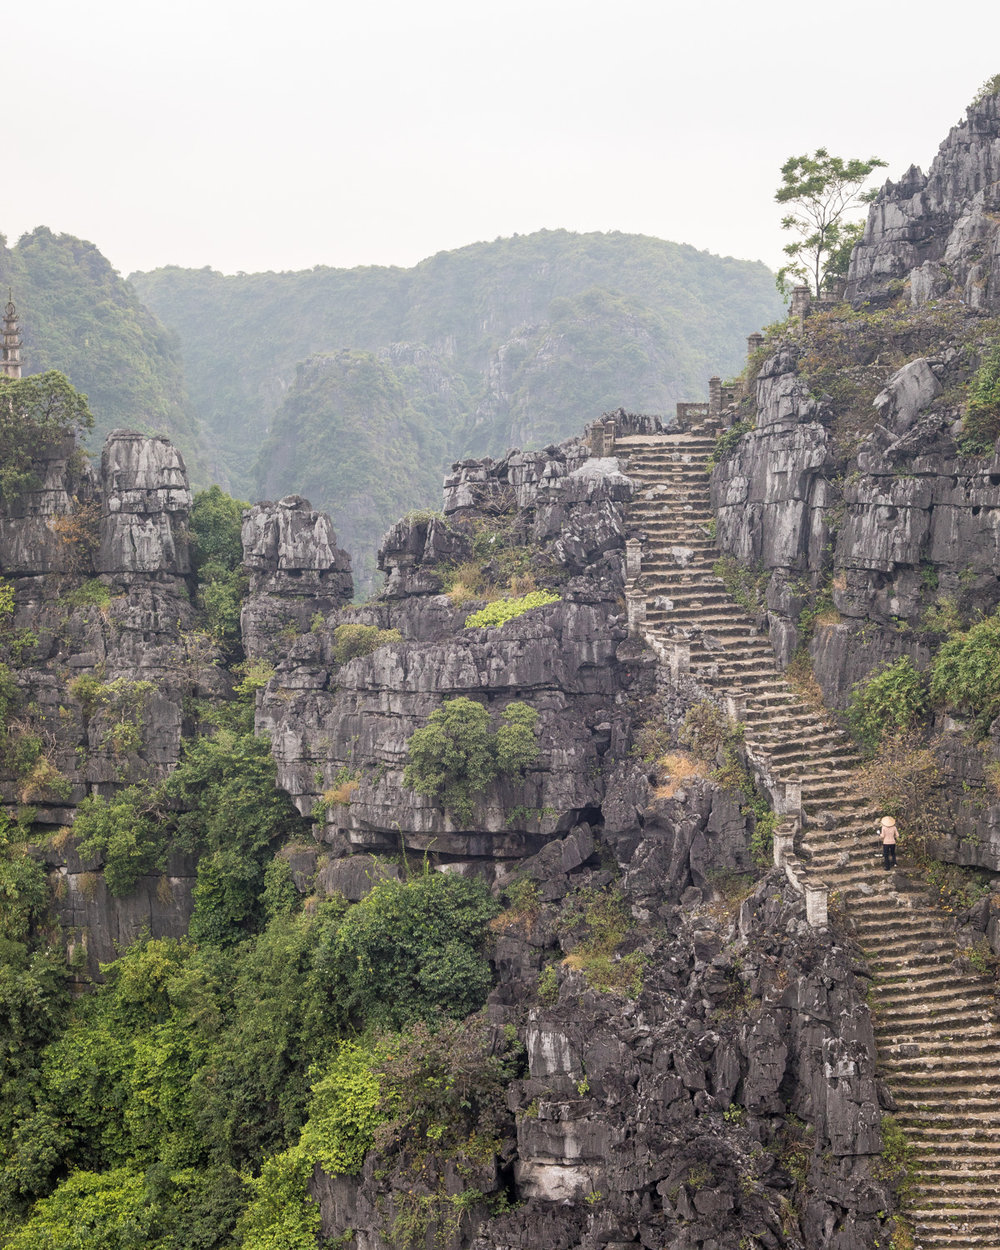 Stairs to Lying Dragon Mountain, Mua Caves - Ninh Binh, Vietnam